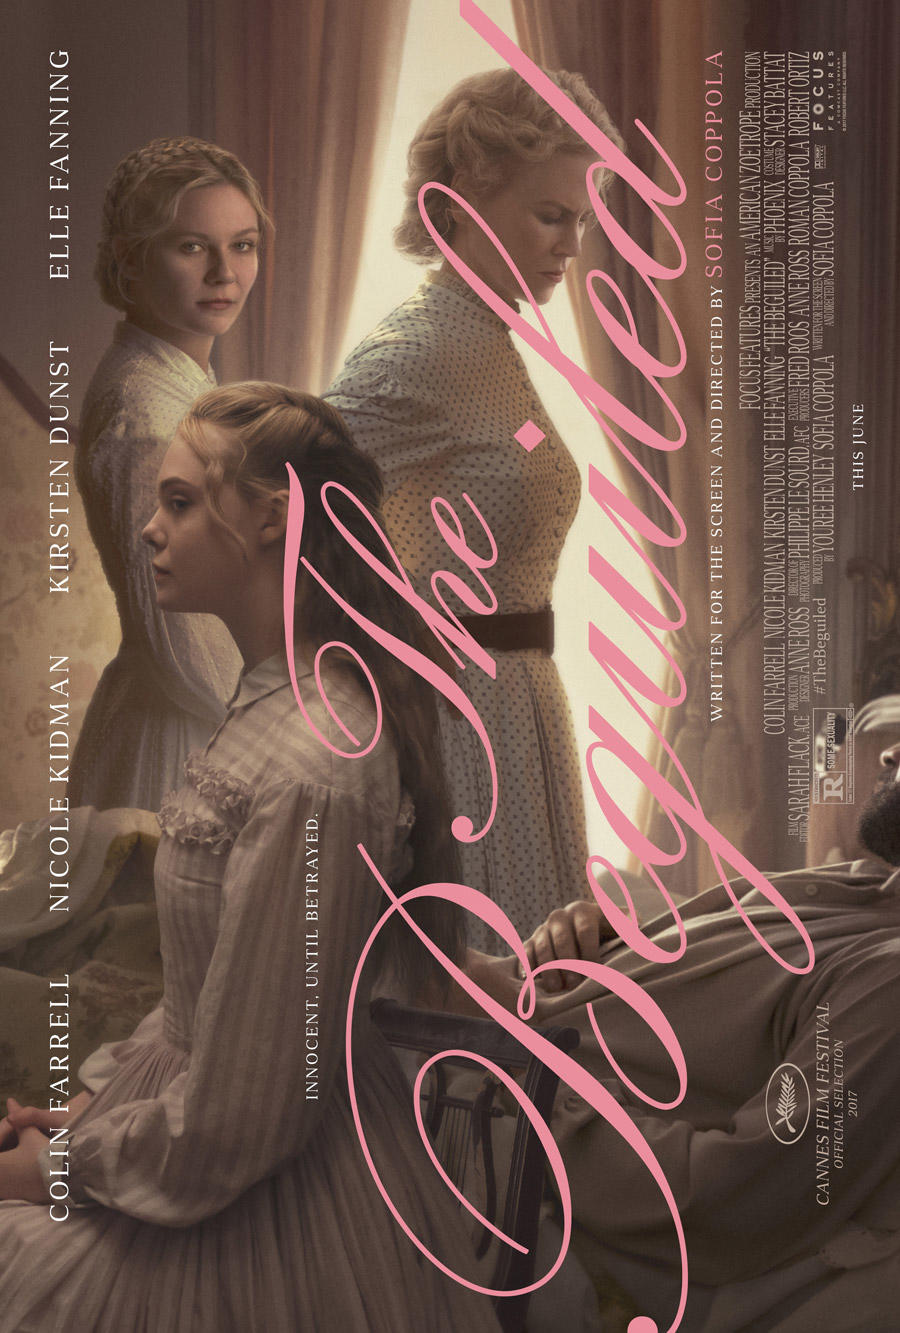 The Beguiled poster art